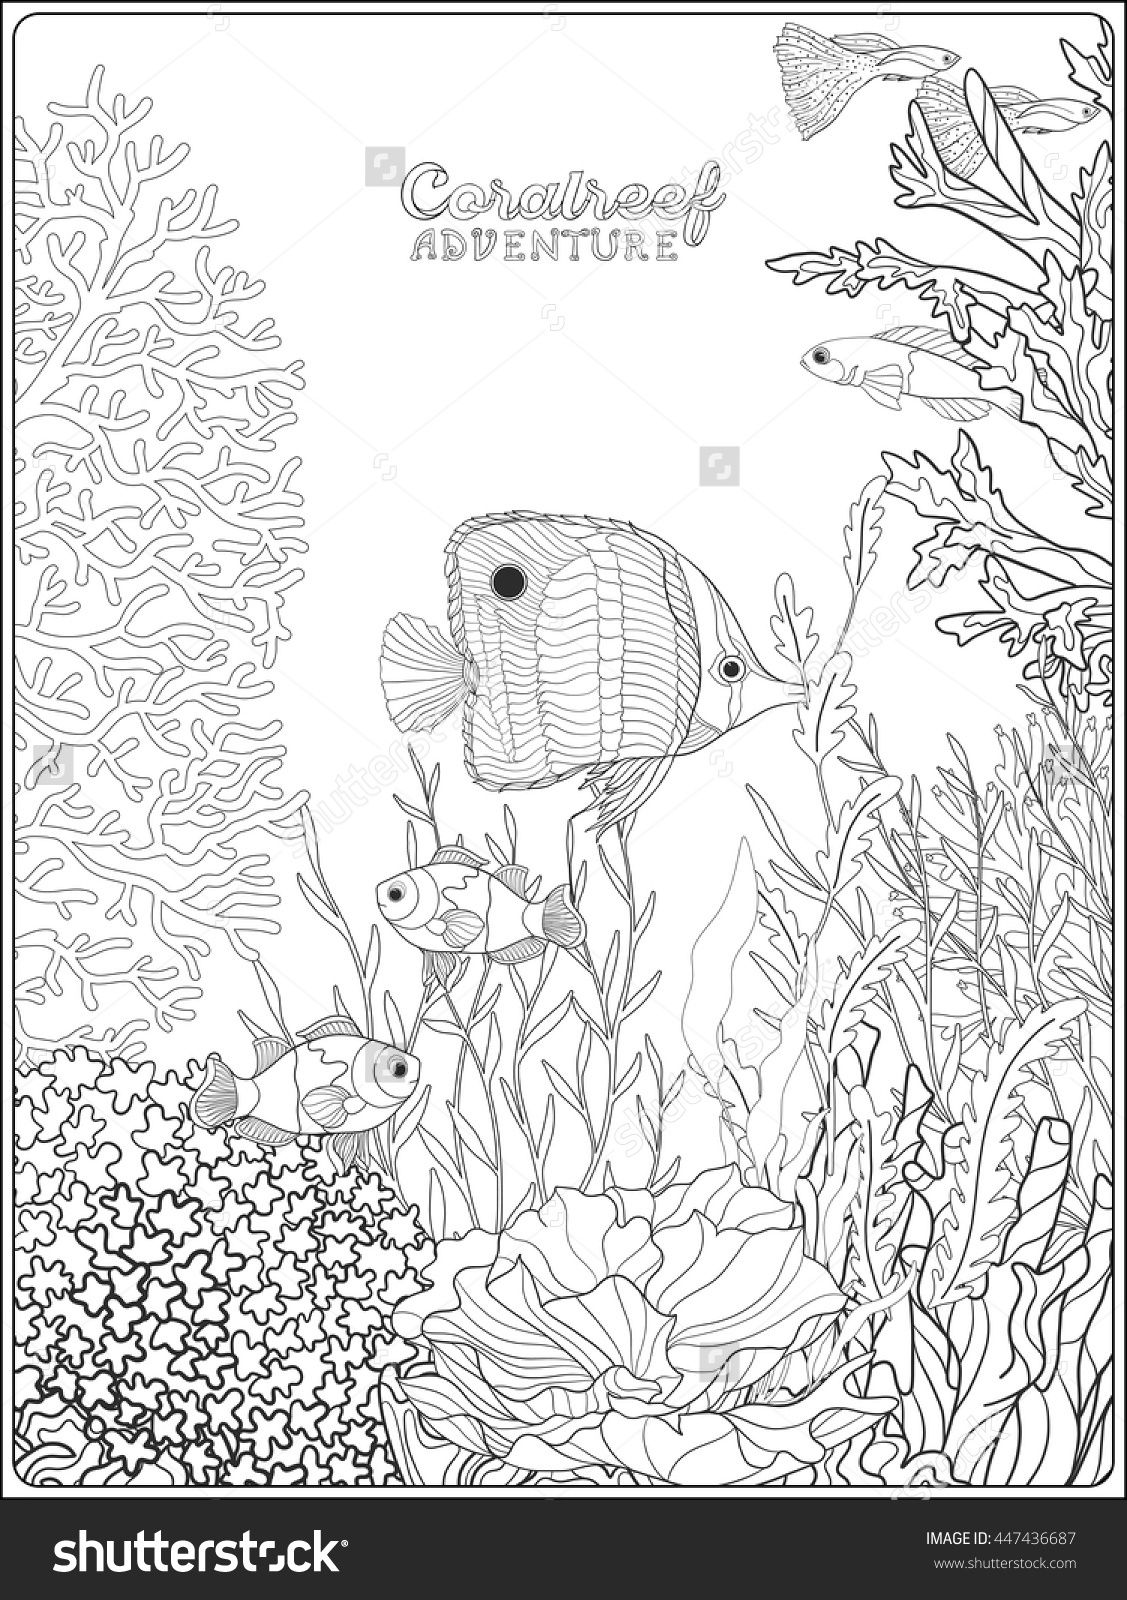 Adult Coloring Book Coloring Page With Underwater World Coral